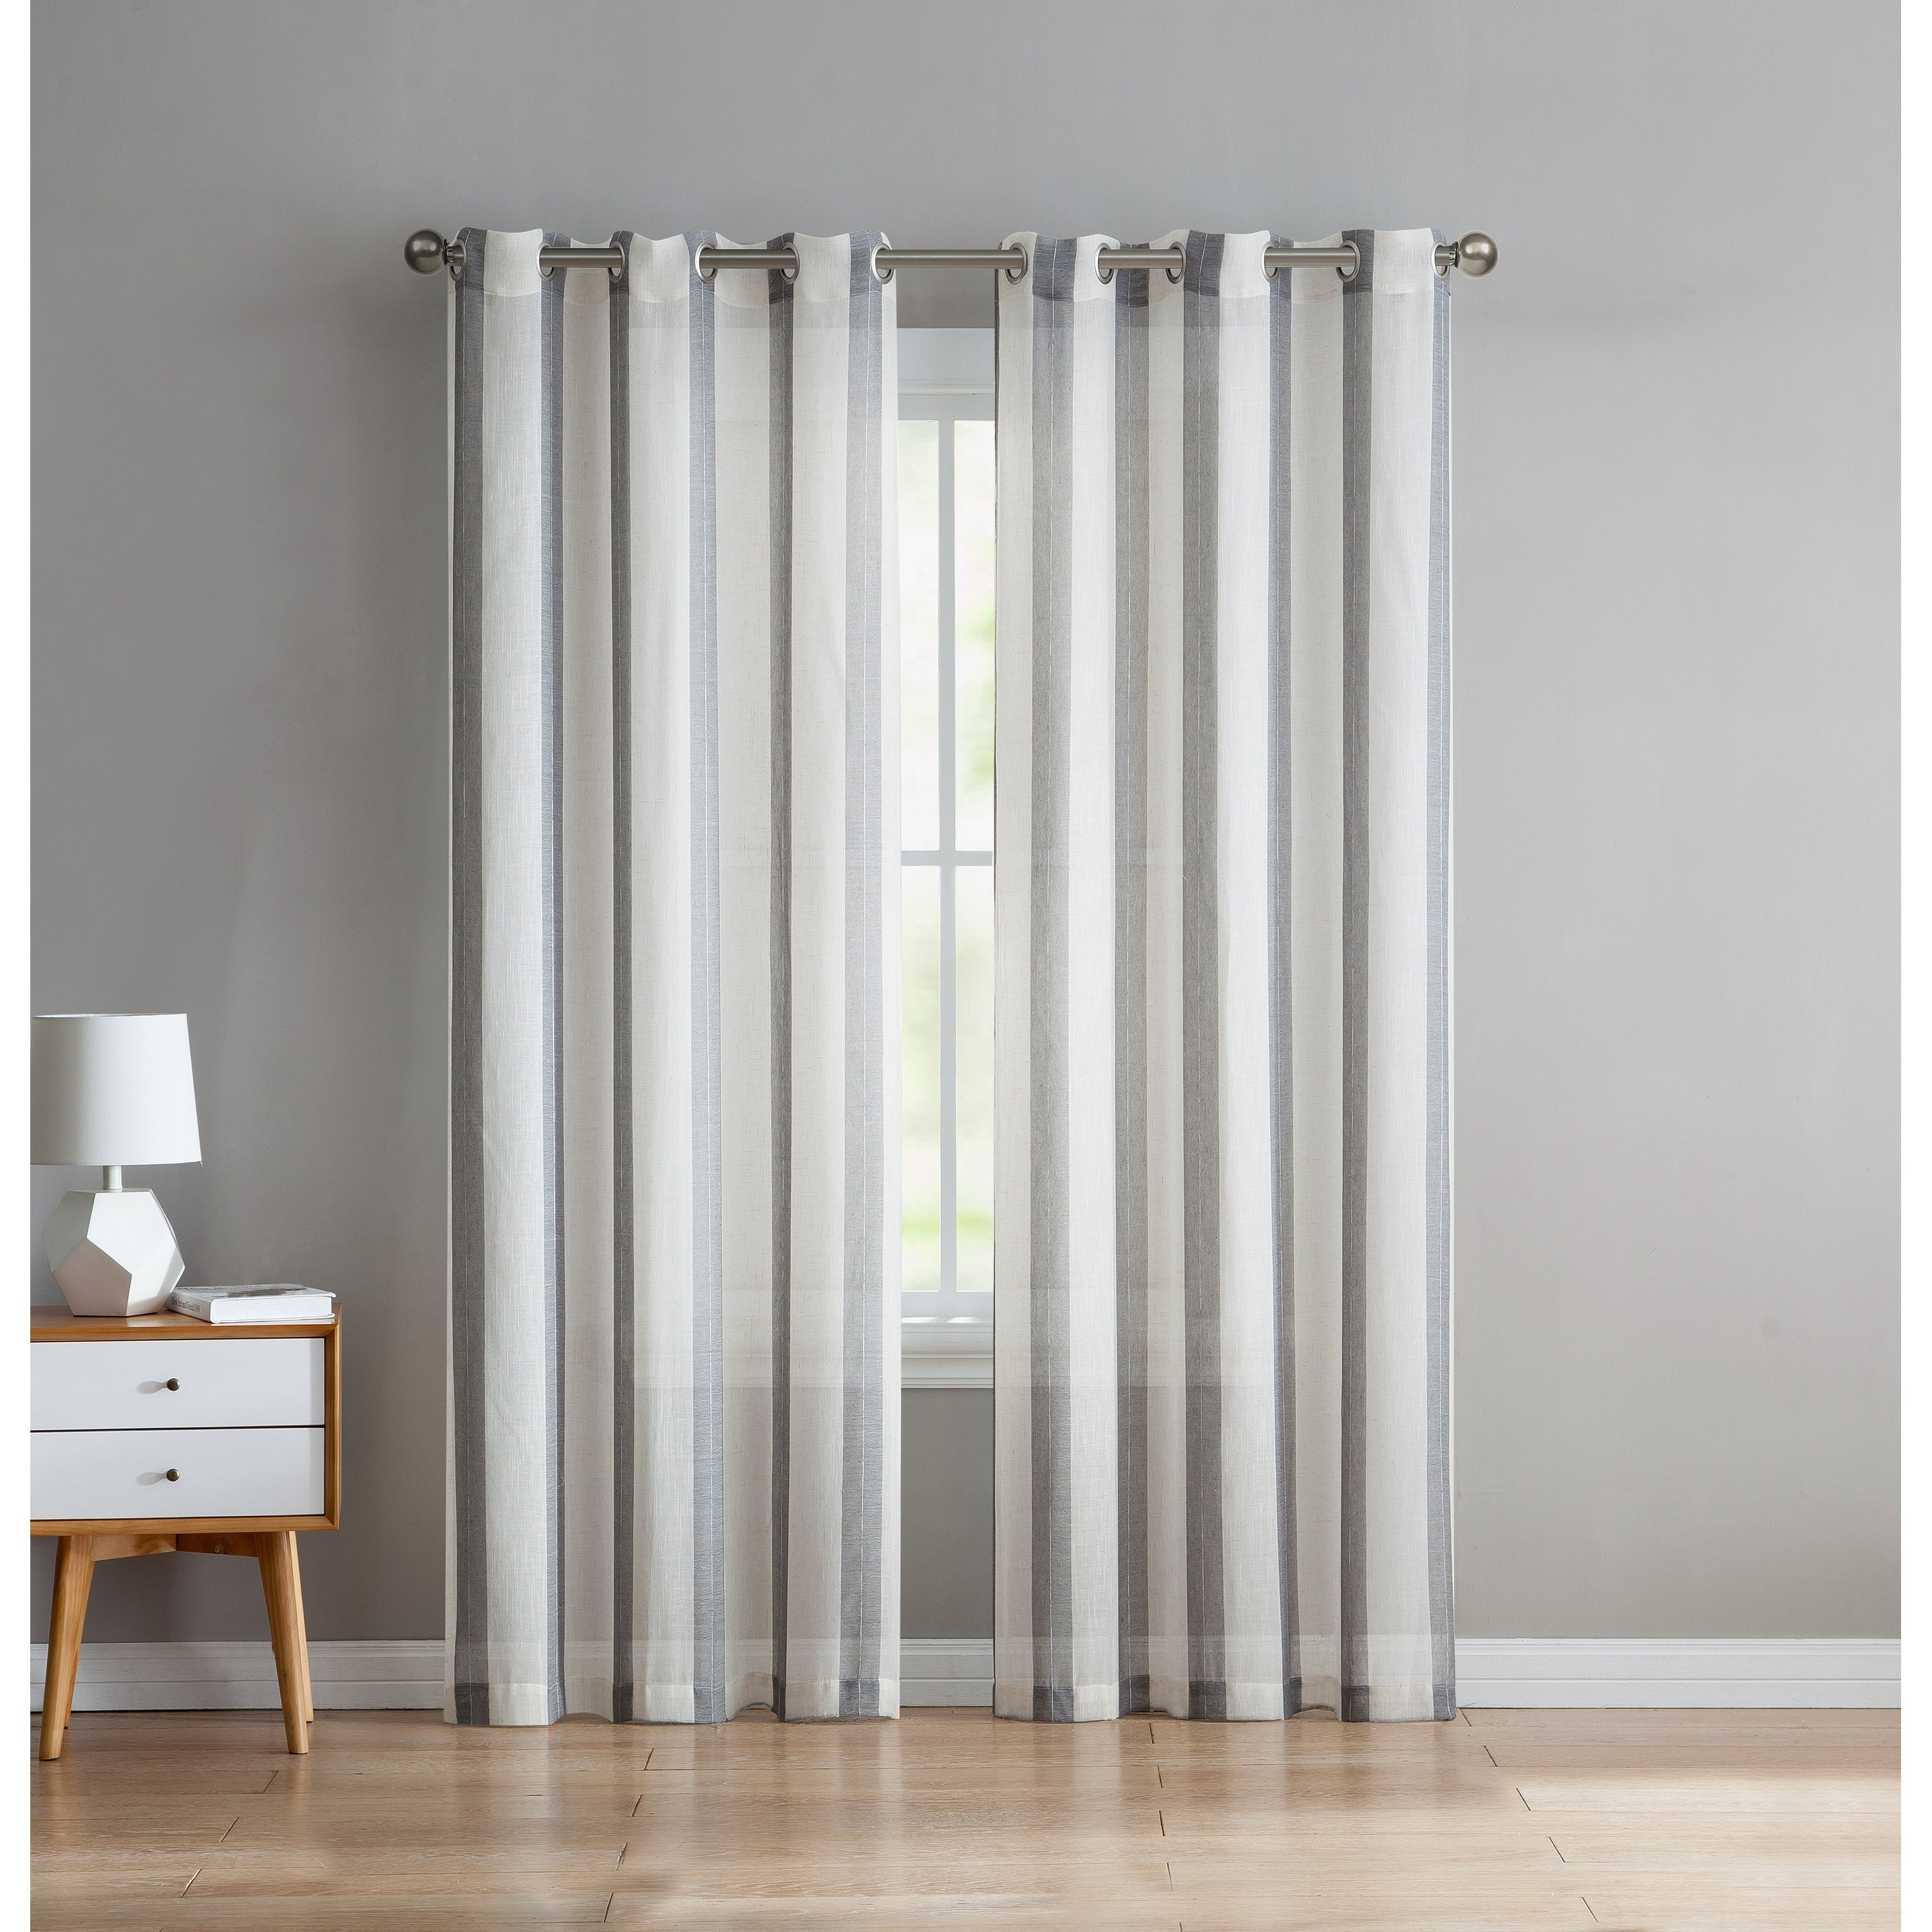 blackout store linen decor hei window gray top panel darcy qlt curtain bed drapes rod curtains category grommet treatments home wid pocket styles more